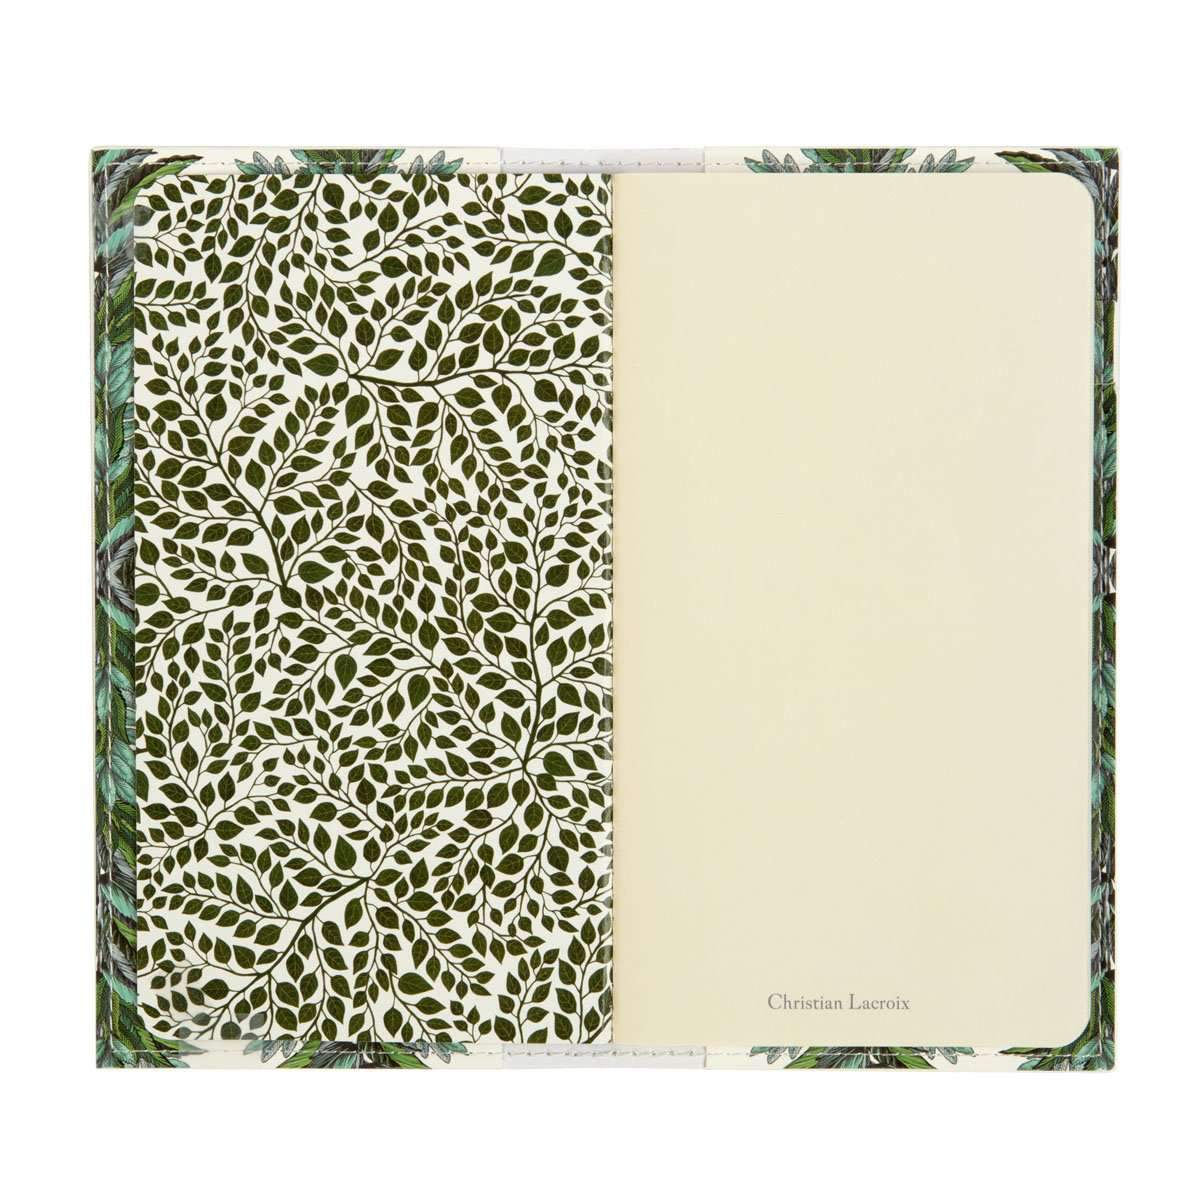 Groussay Travel Journal Christian Lacroix Notebooks and Journals Christian Lacroix